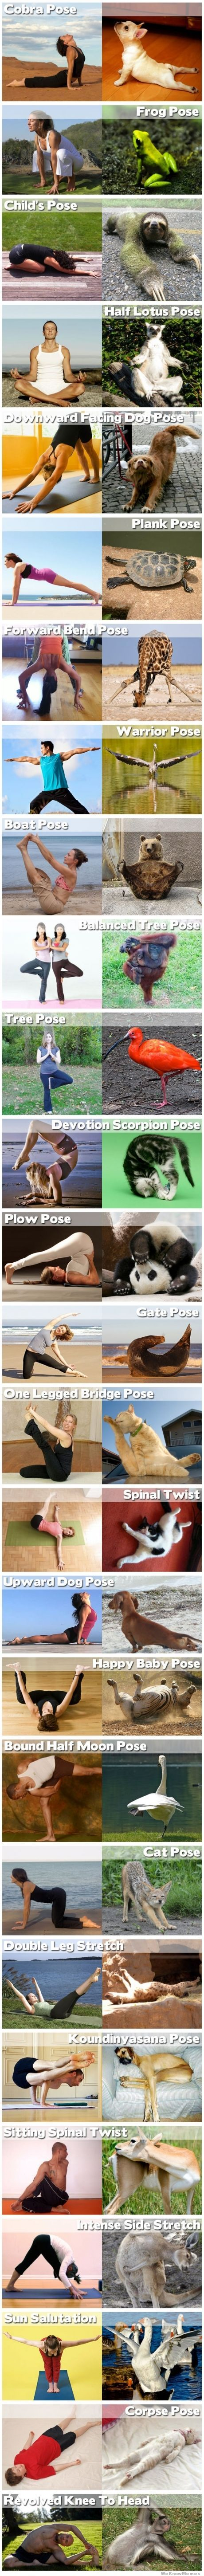 animals-doing-yoga-poses